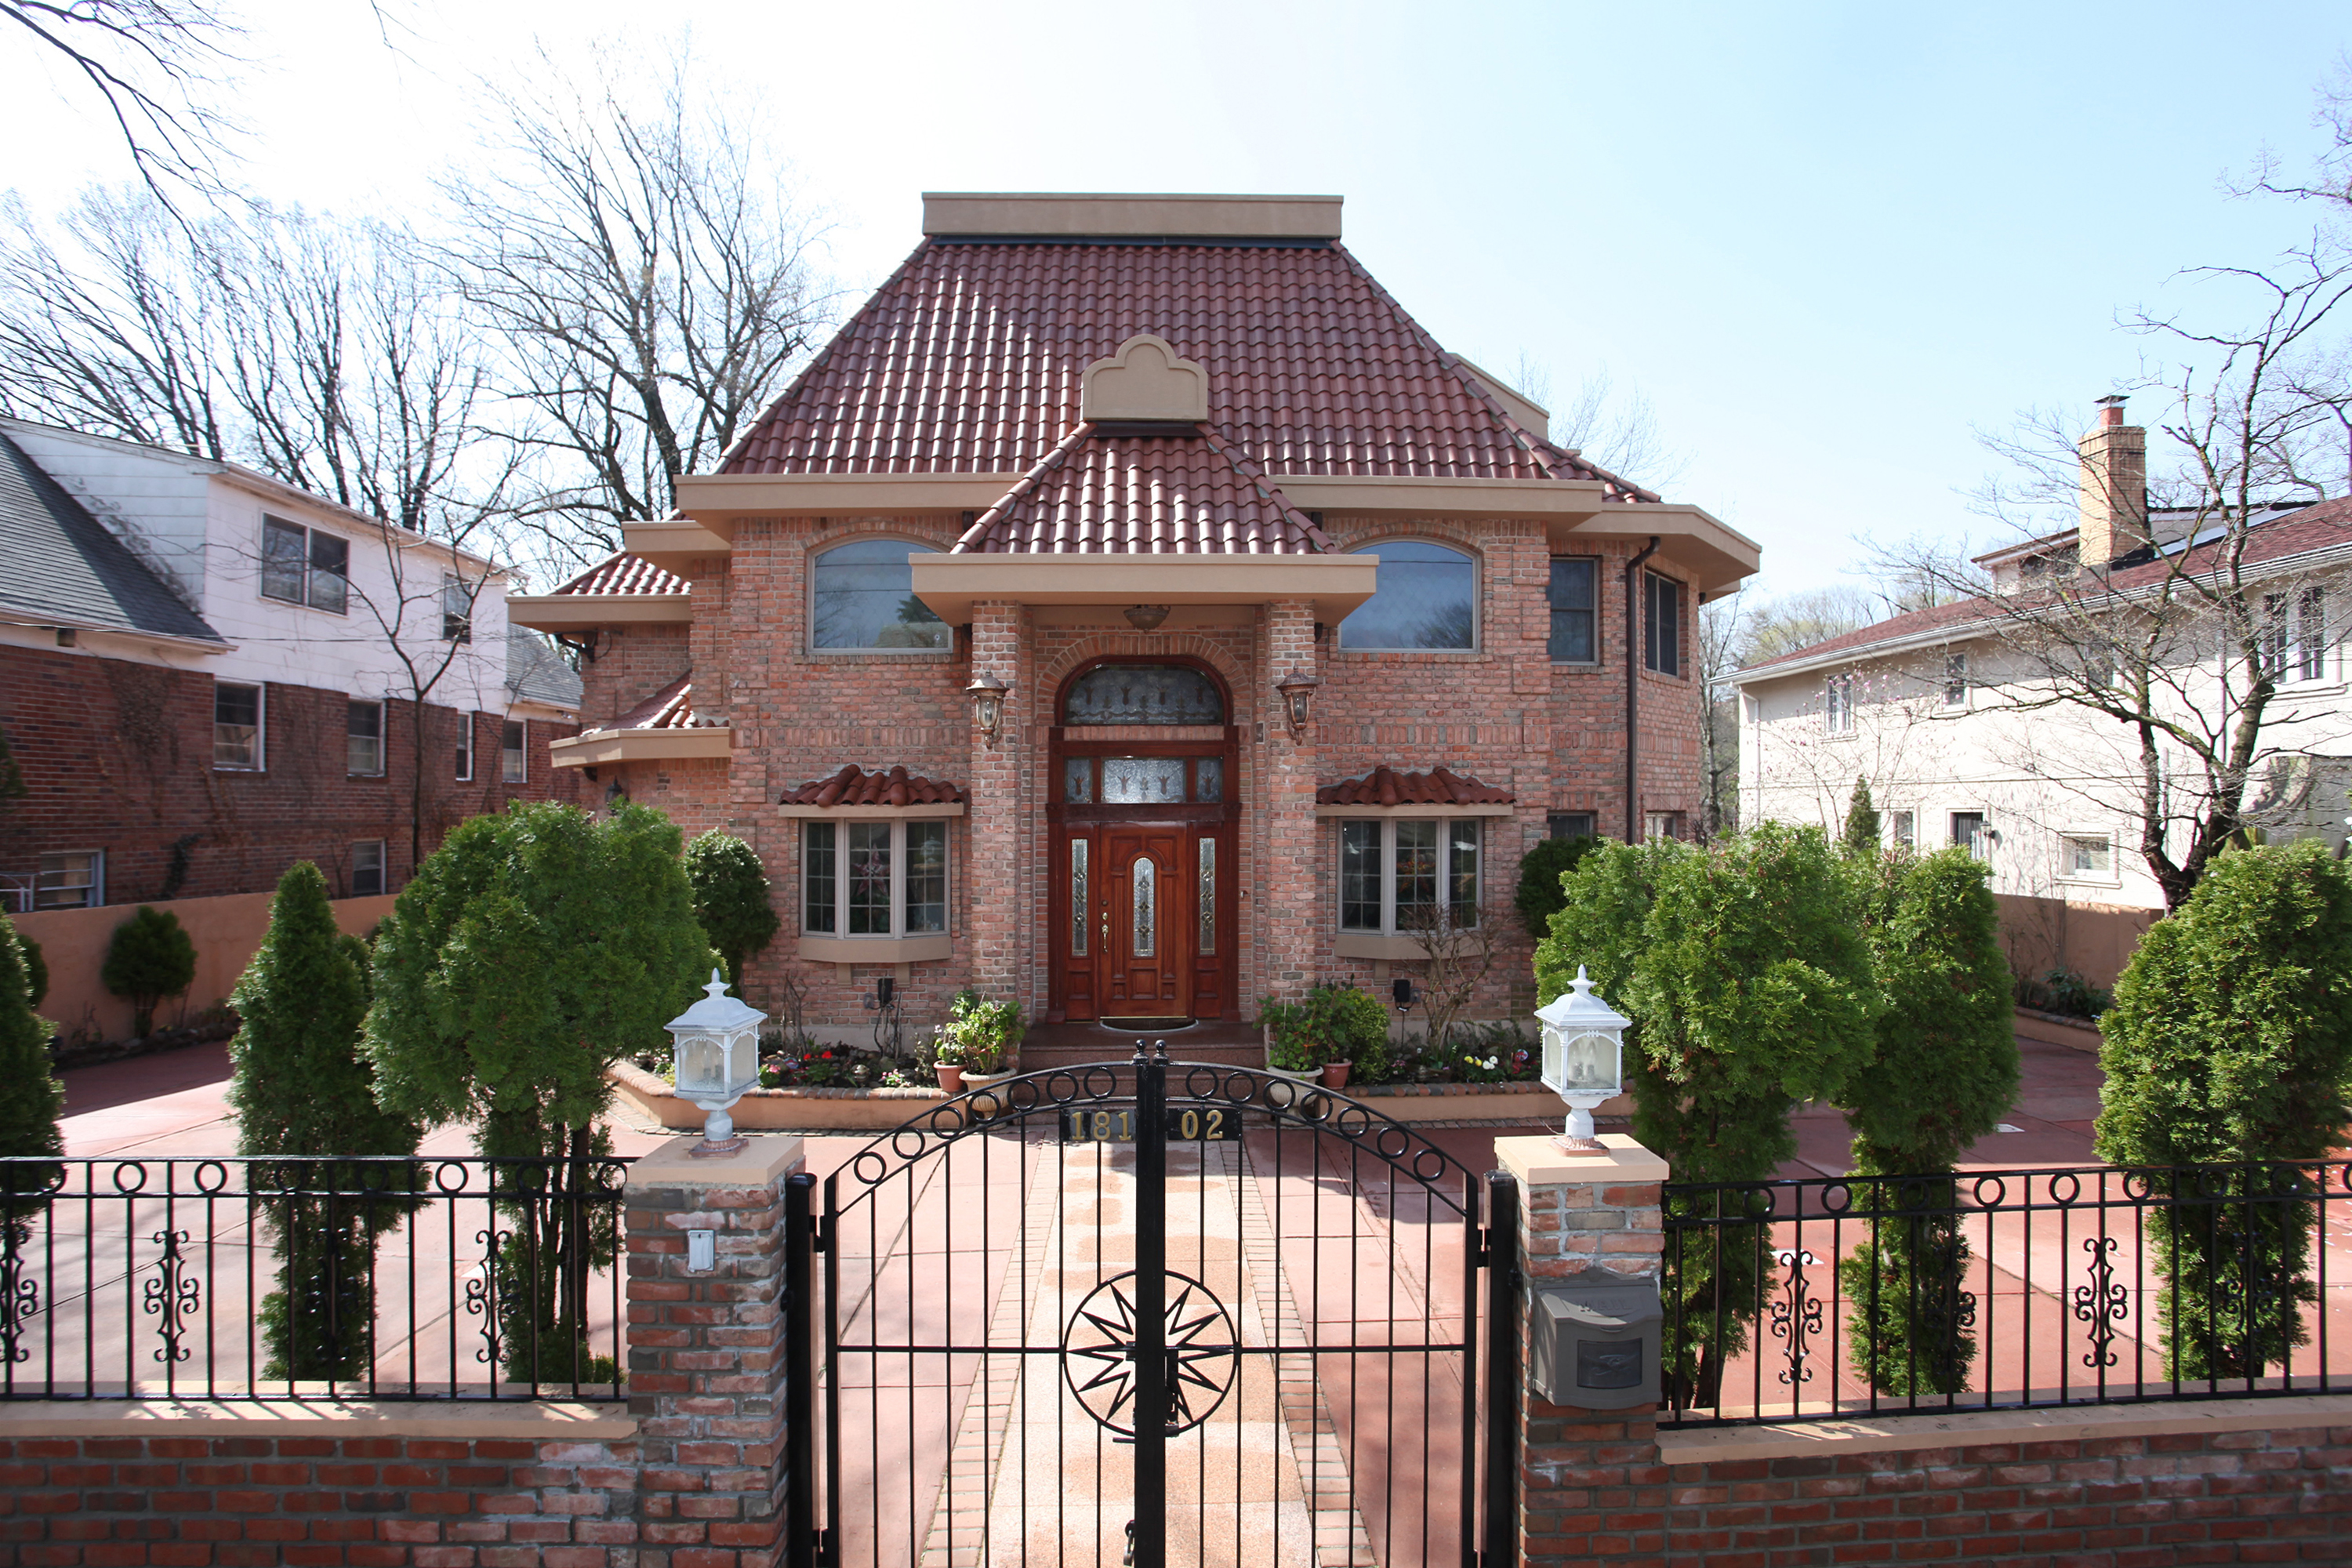 Where to find mansions in queens ny mansions in queens for New york luxury homes for sale